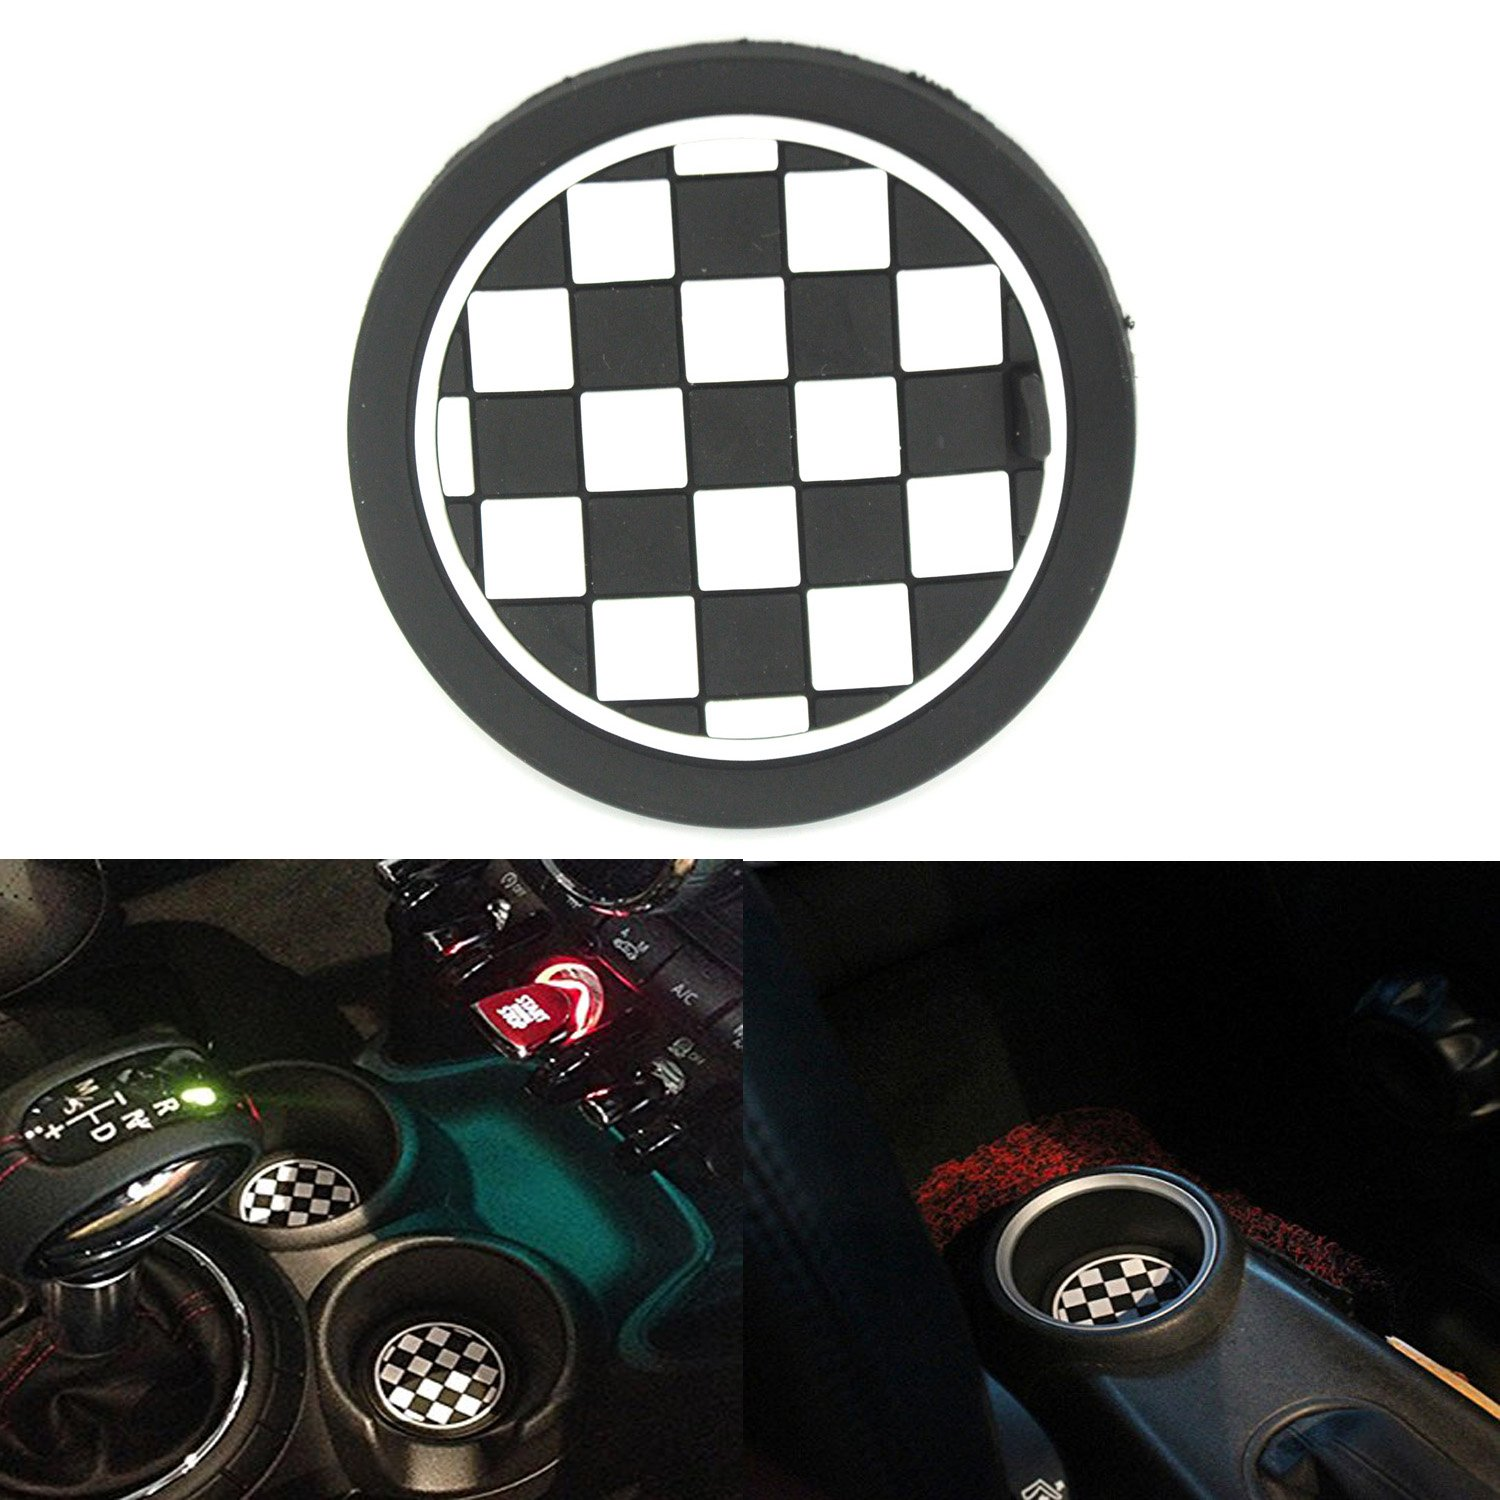 ASUMAN 2PCS 73mm Black/White Checkered Checkerboard Pattern Anti Slip Soft Silicone Cup Holder Car Coasters Cup Mat For MINI Cooper R55 R56 R57 R58 R59 Front Cup Holders ASUMAN BEAU